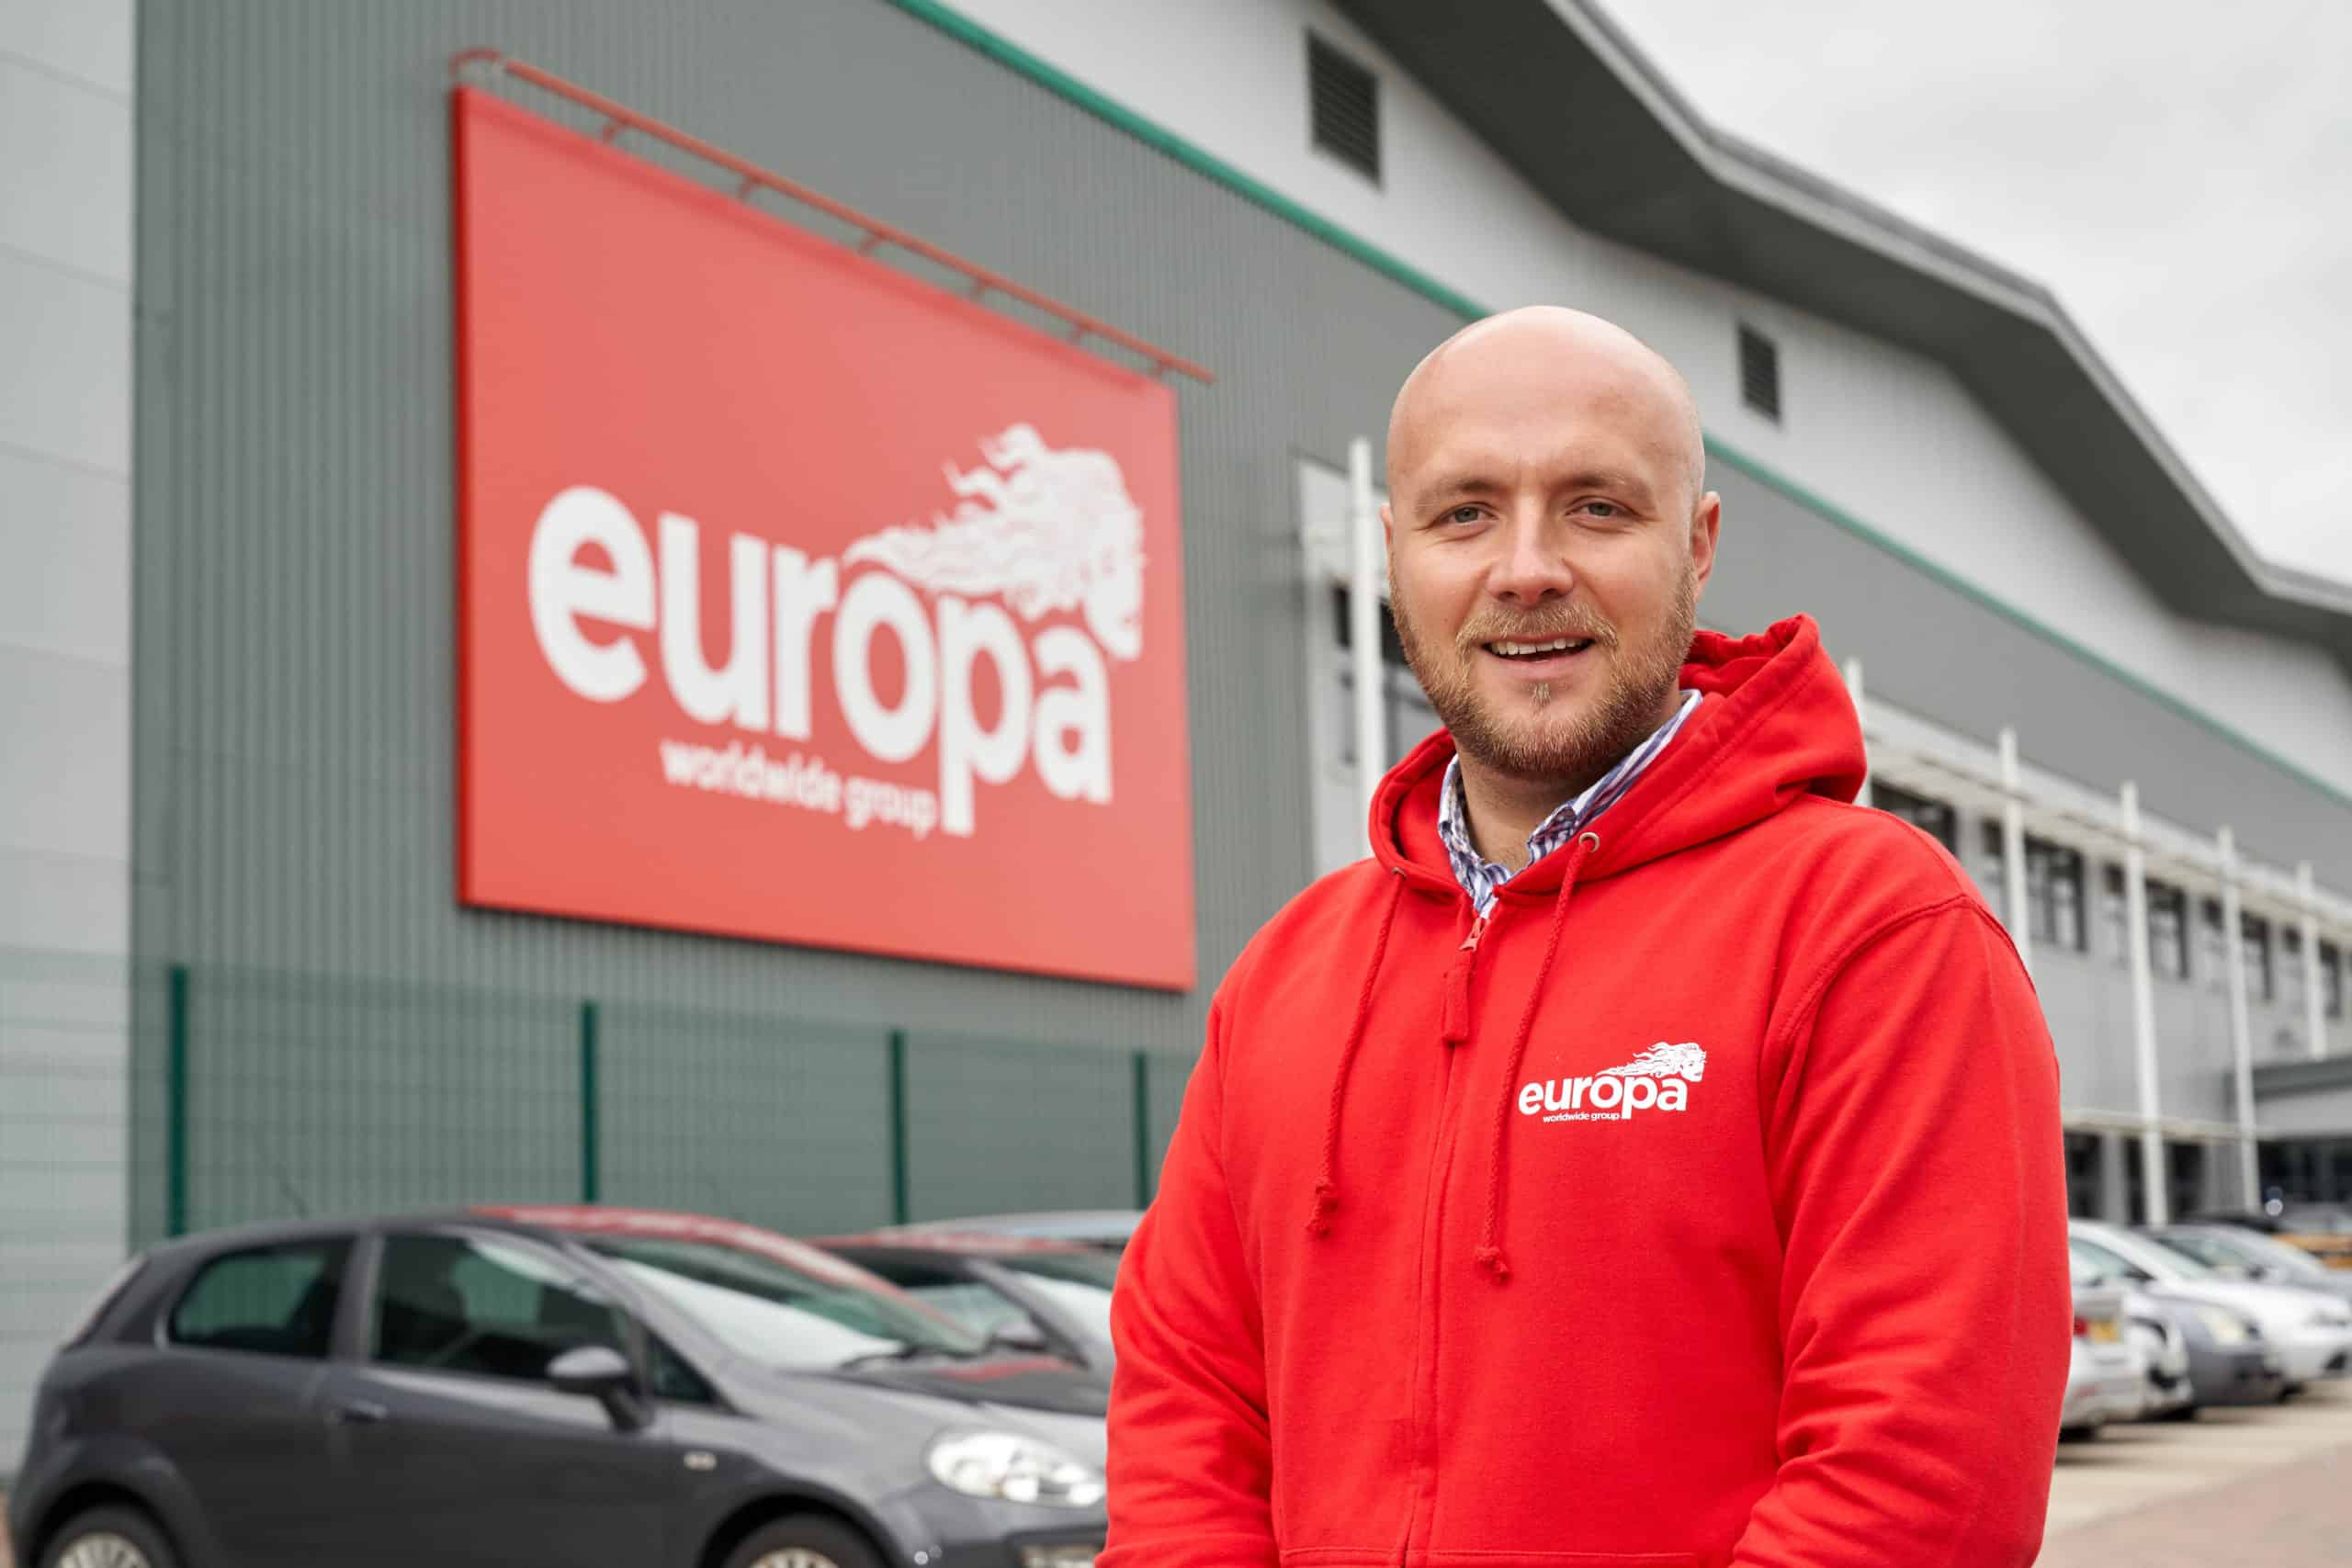 Paul Brady Operations Manager at Europa Showfreight